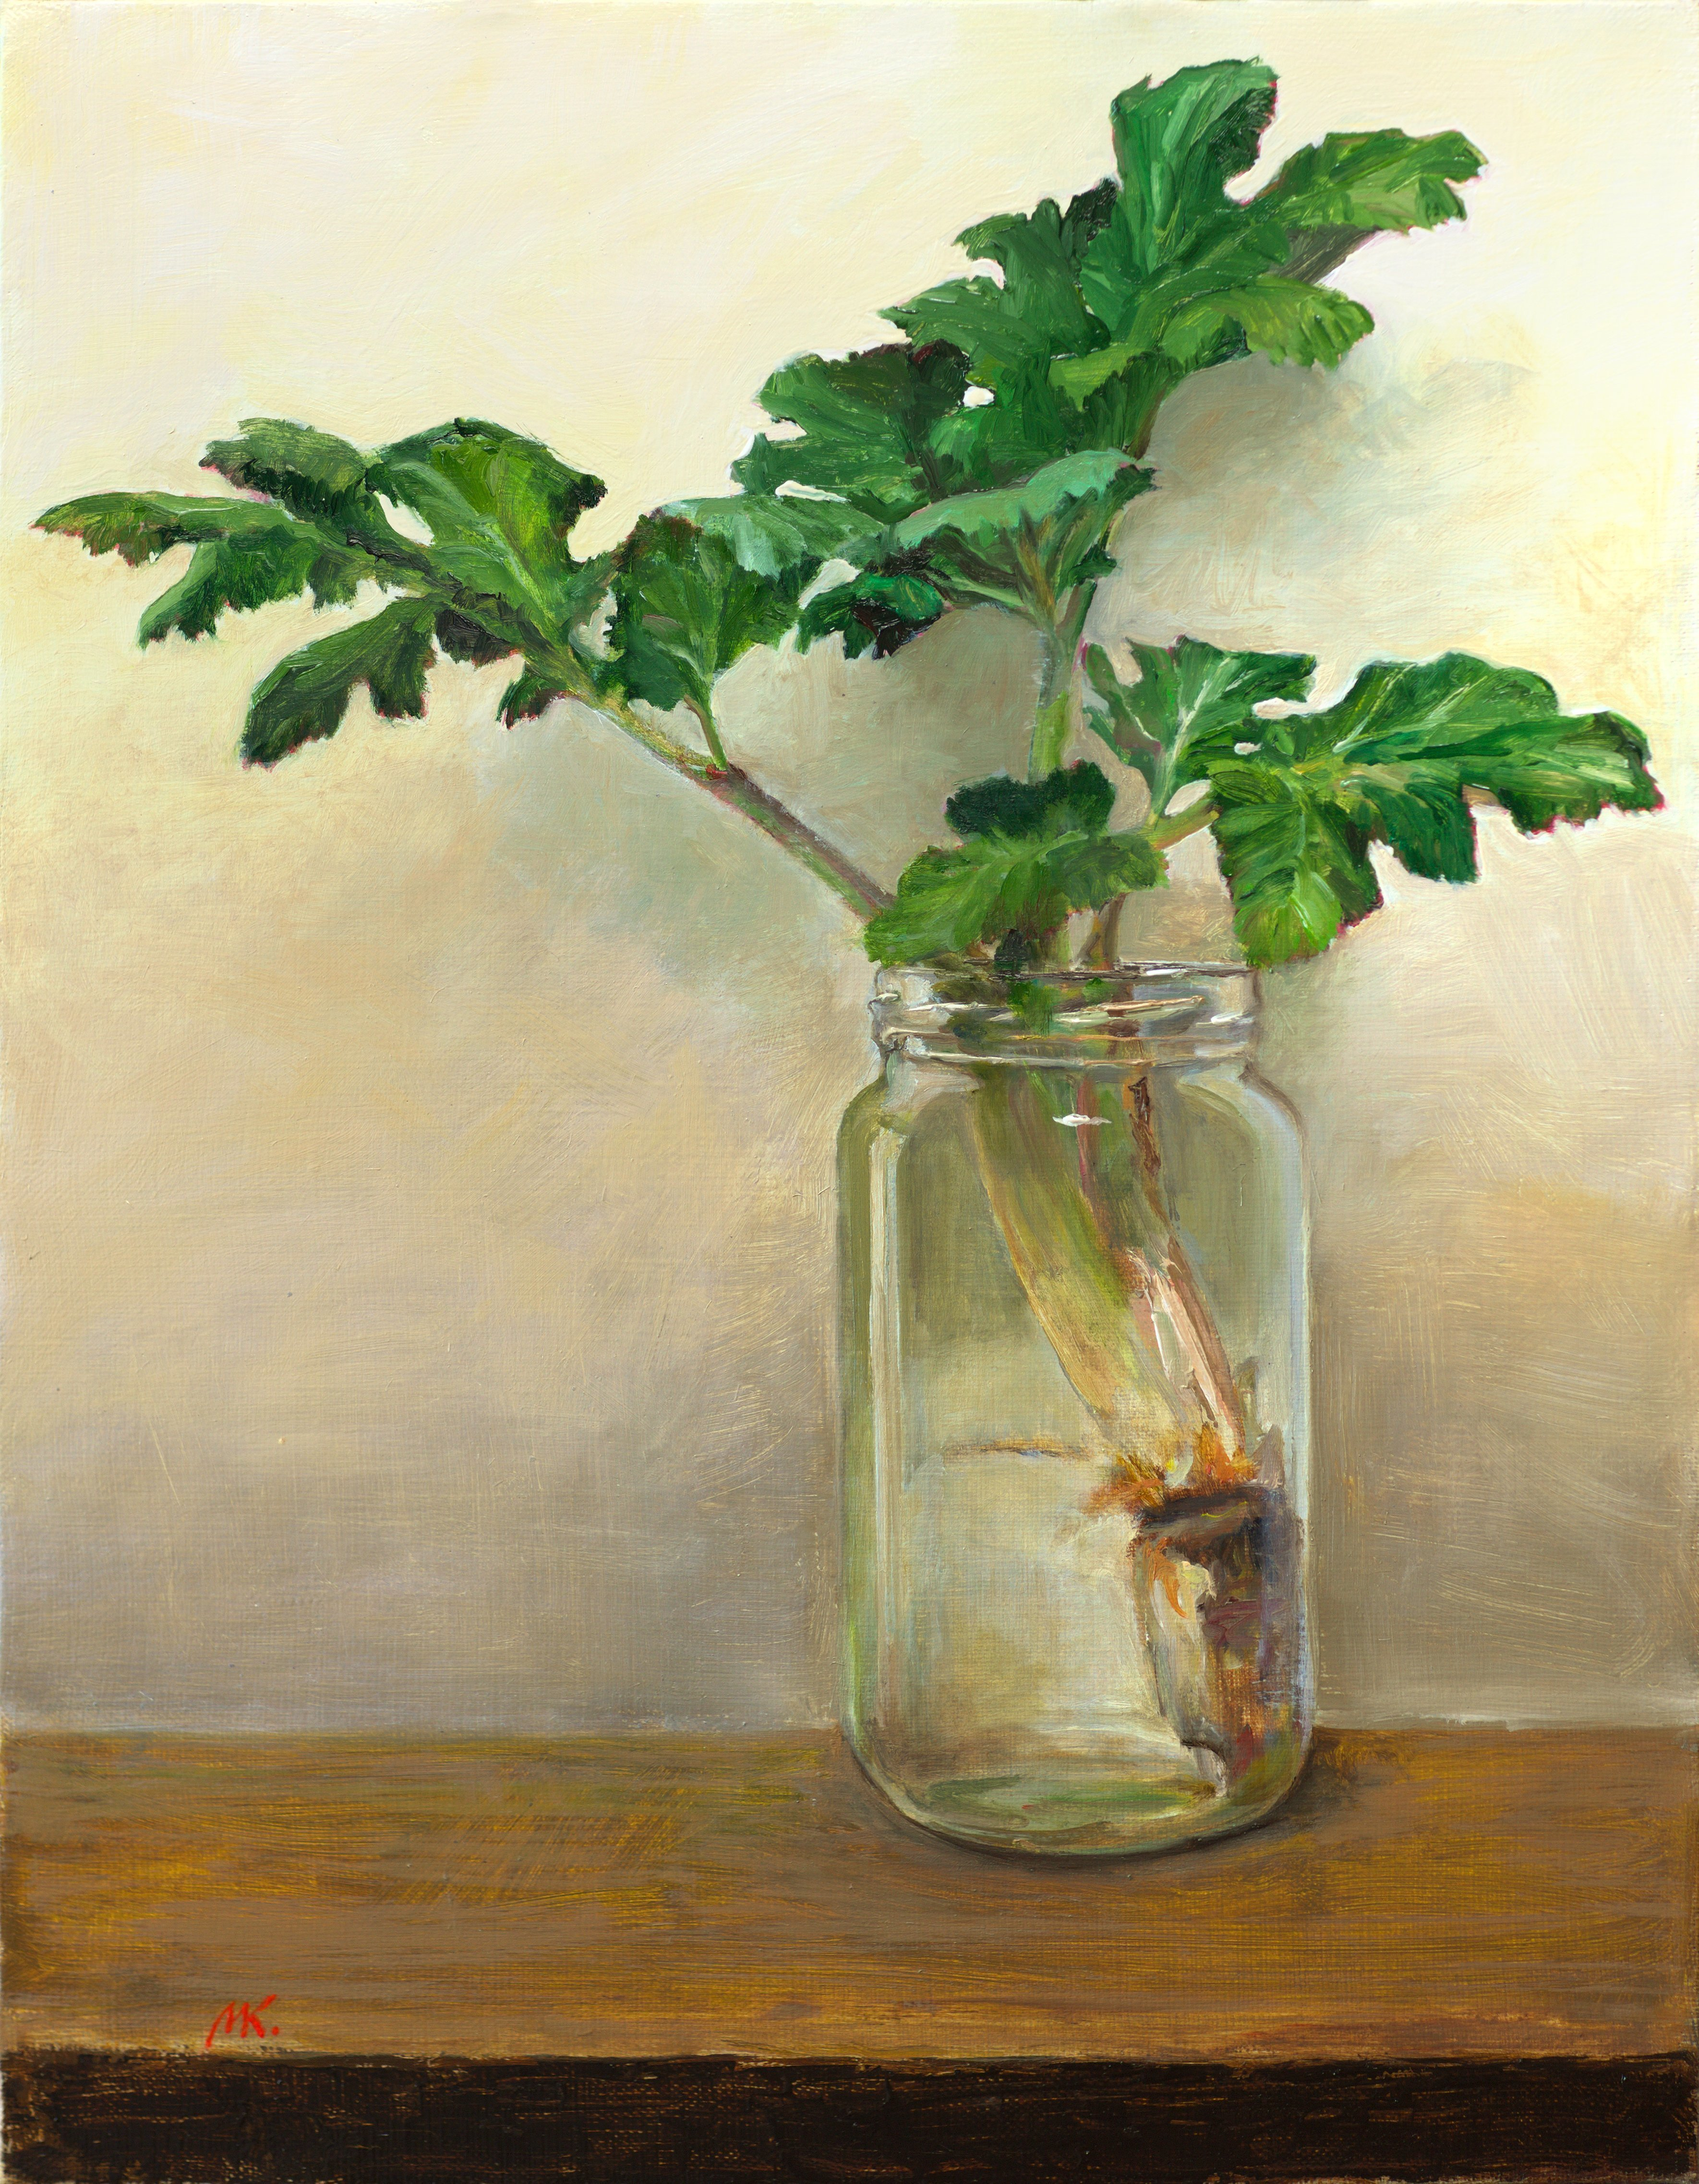 Mikhail Velavok; A Plant, 2017, Original Painting Oil, 13.8 x 17.7 inches. Artwork description: 241 Original oil on canvas stretched on a wooden underframe. The artwork is being sold unframed. The frame in the additional photo is an example only.hogweed, still life, jar, glass, plant, leaf, green, yellow, brown...